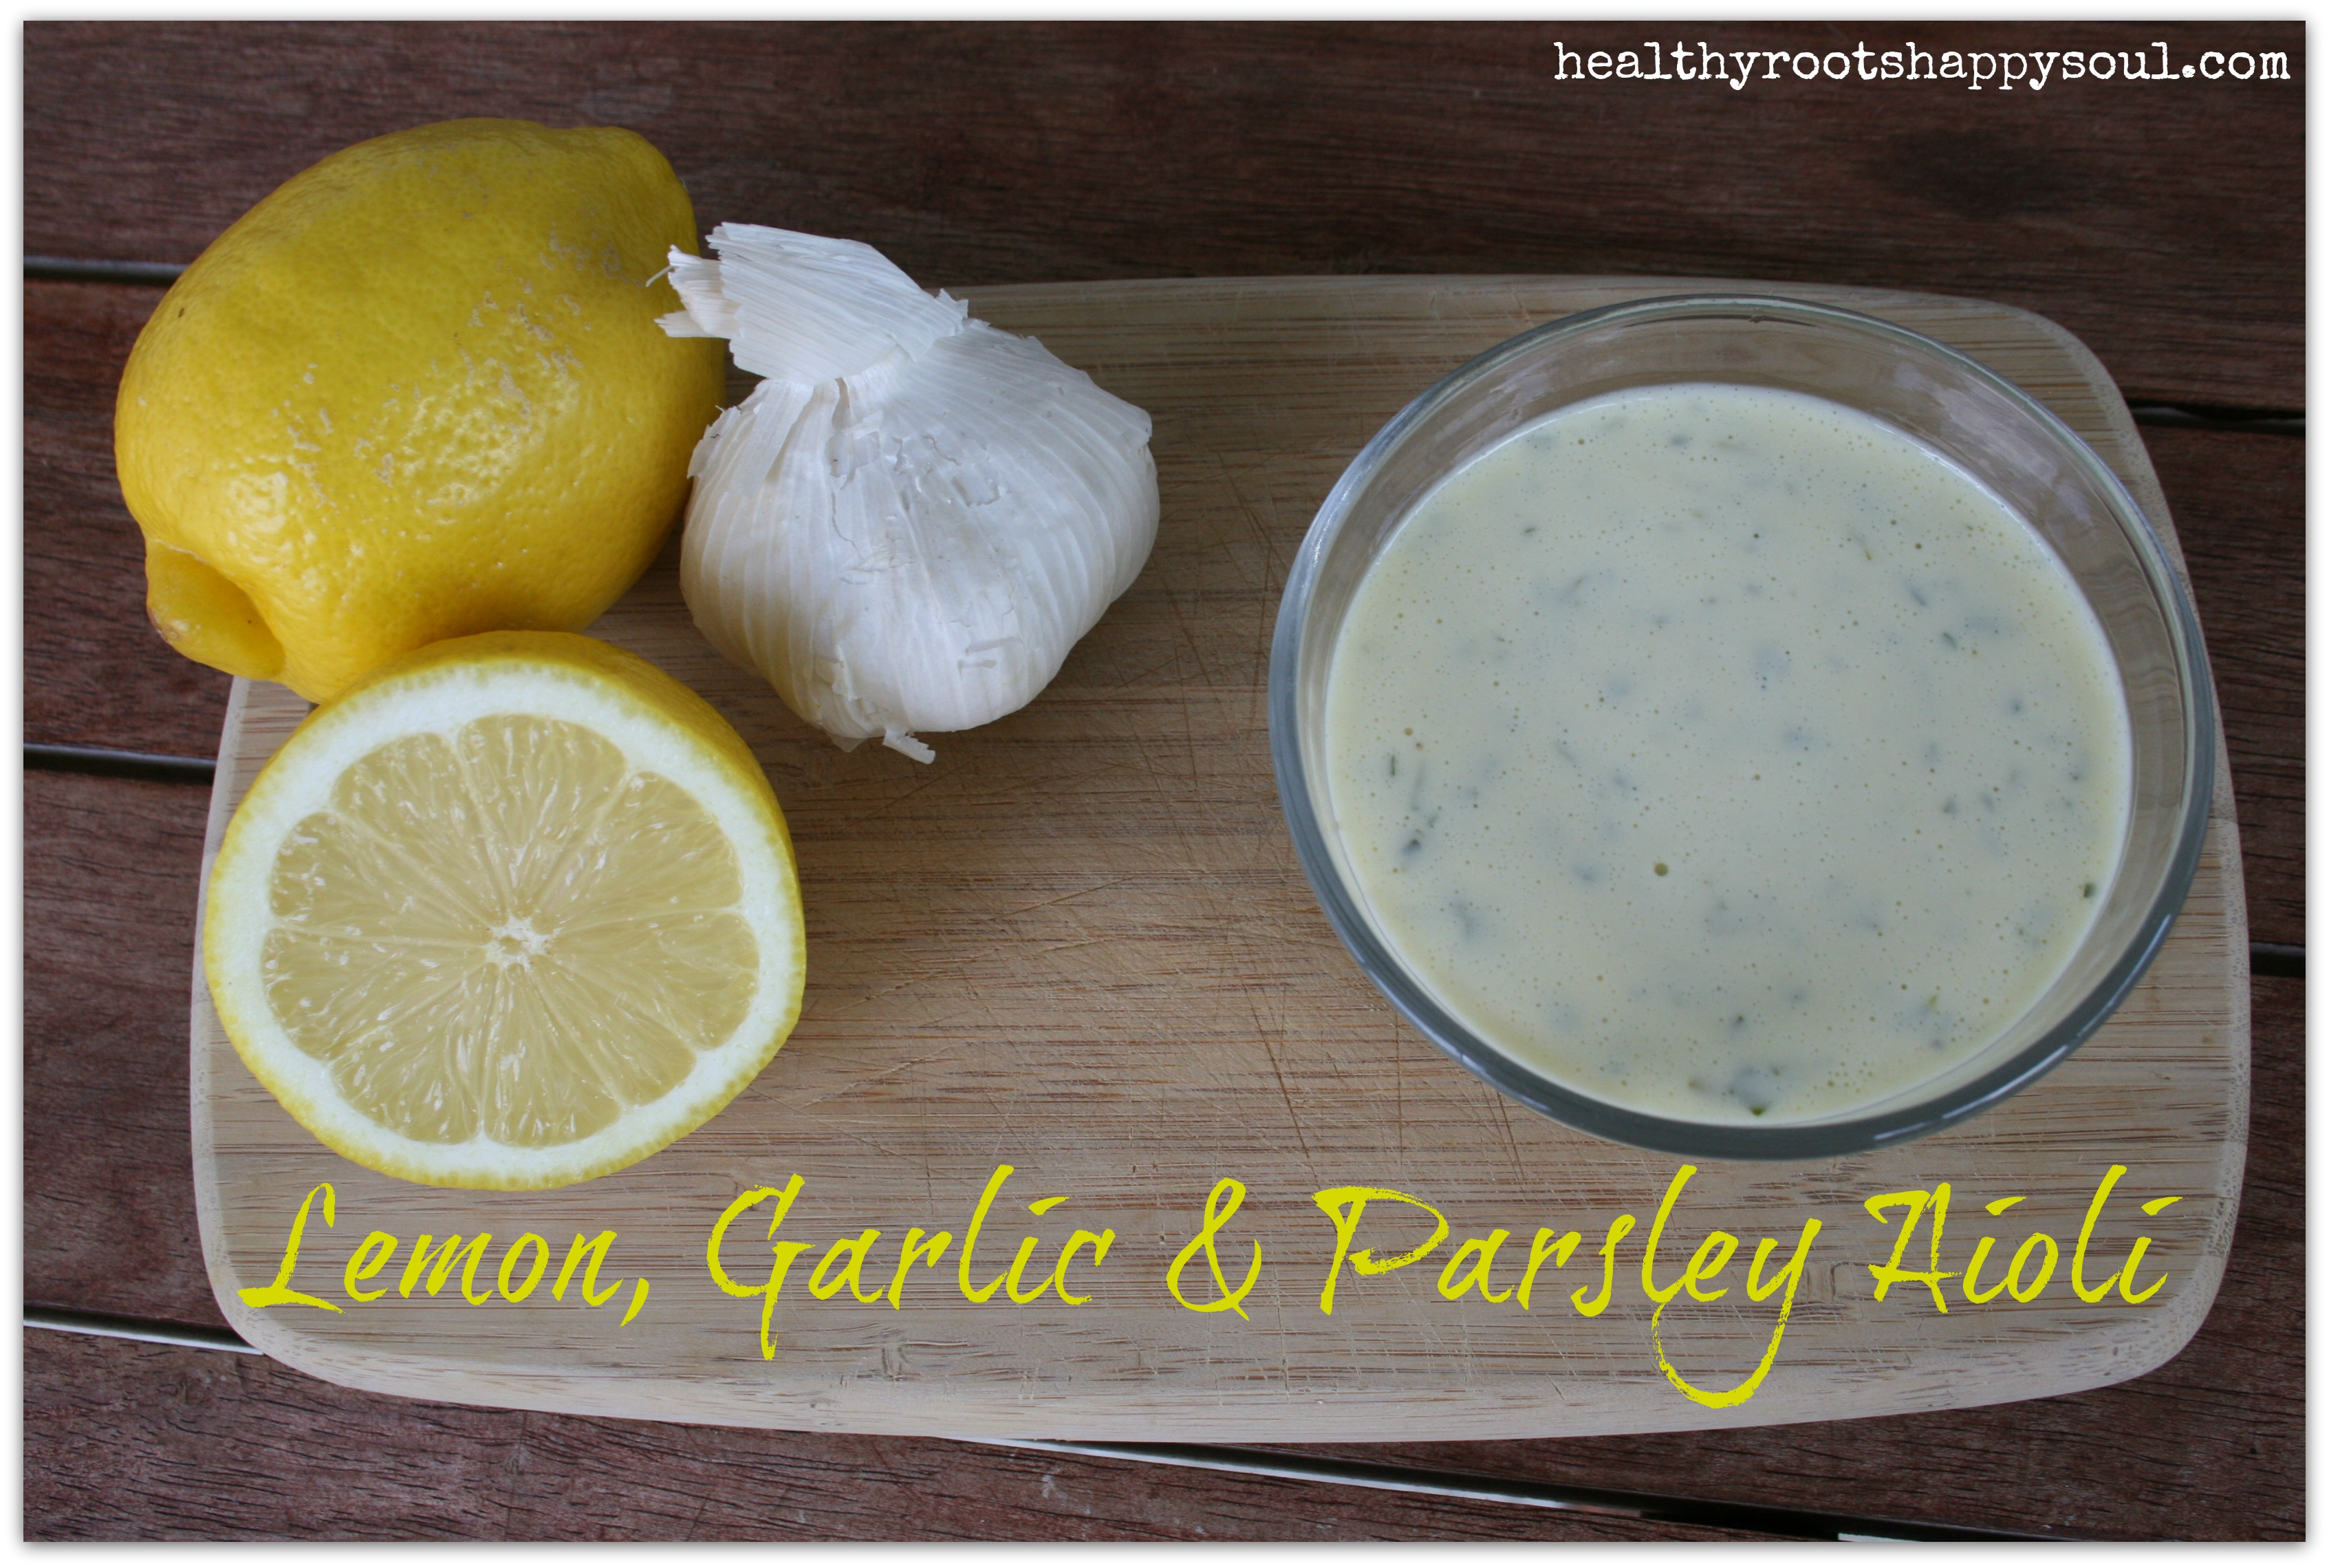 Naturally Loriel / Lemon, Garlic & Parsley Aioli - Naturally Loriel